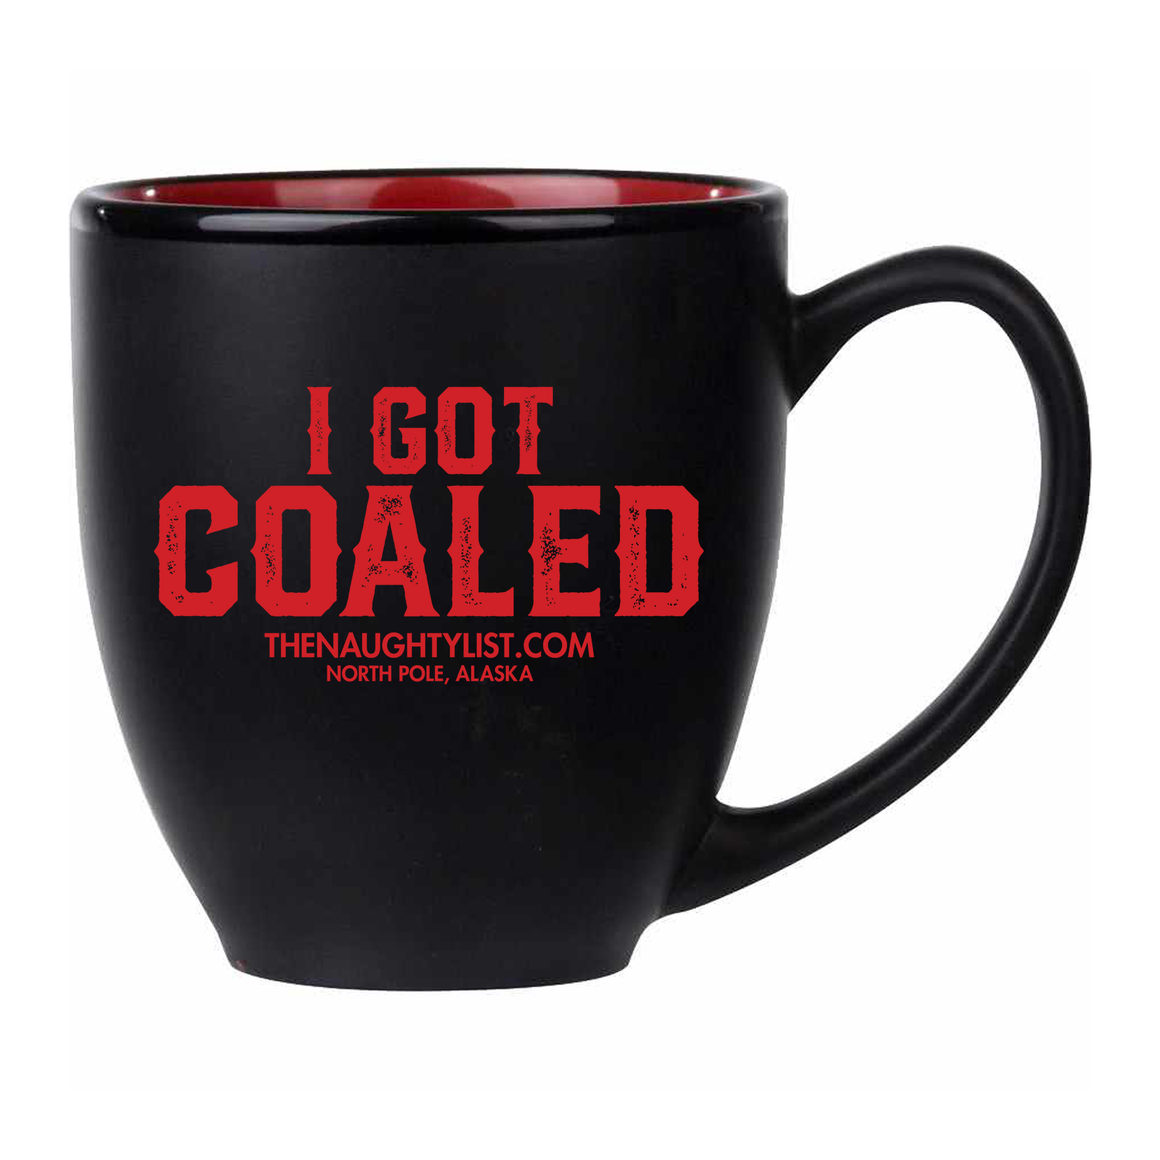 """I Got Coaled"" - Black with Red Coffee Cup - Kona Joe 